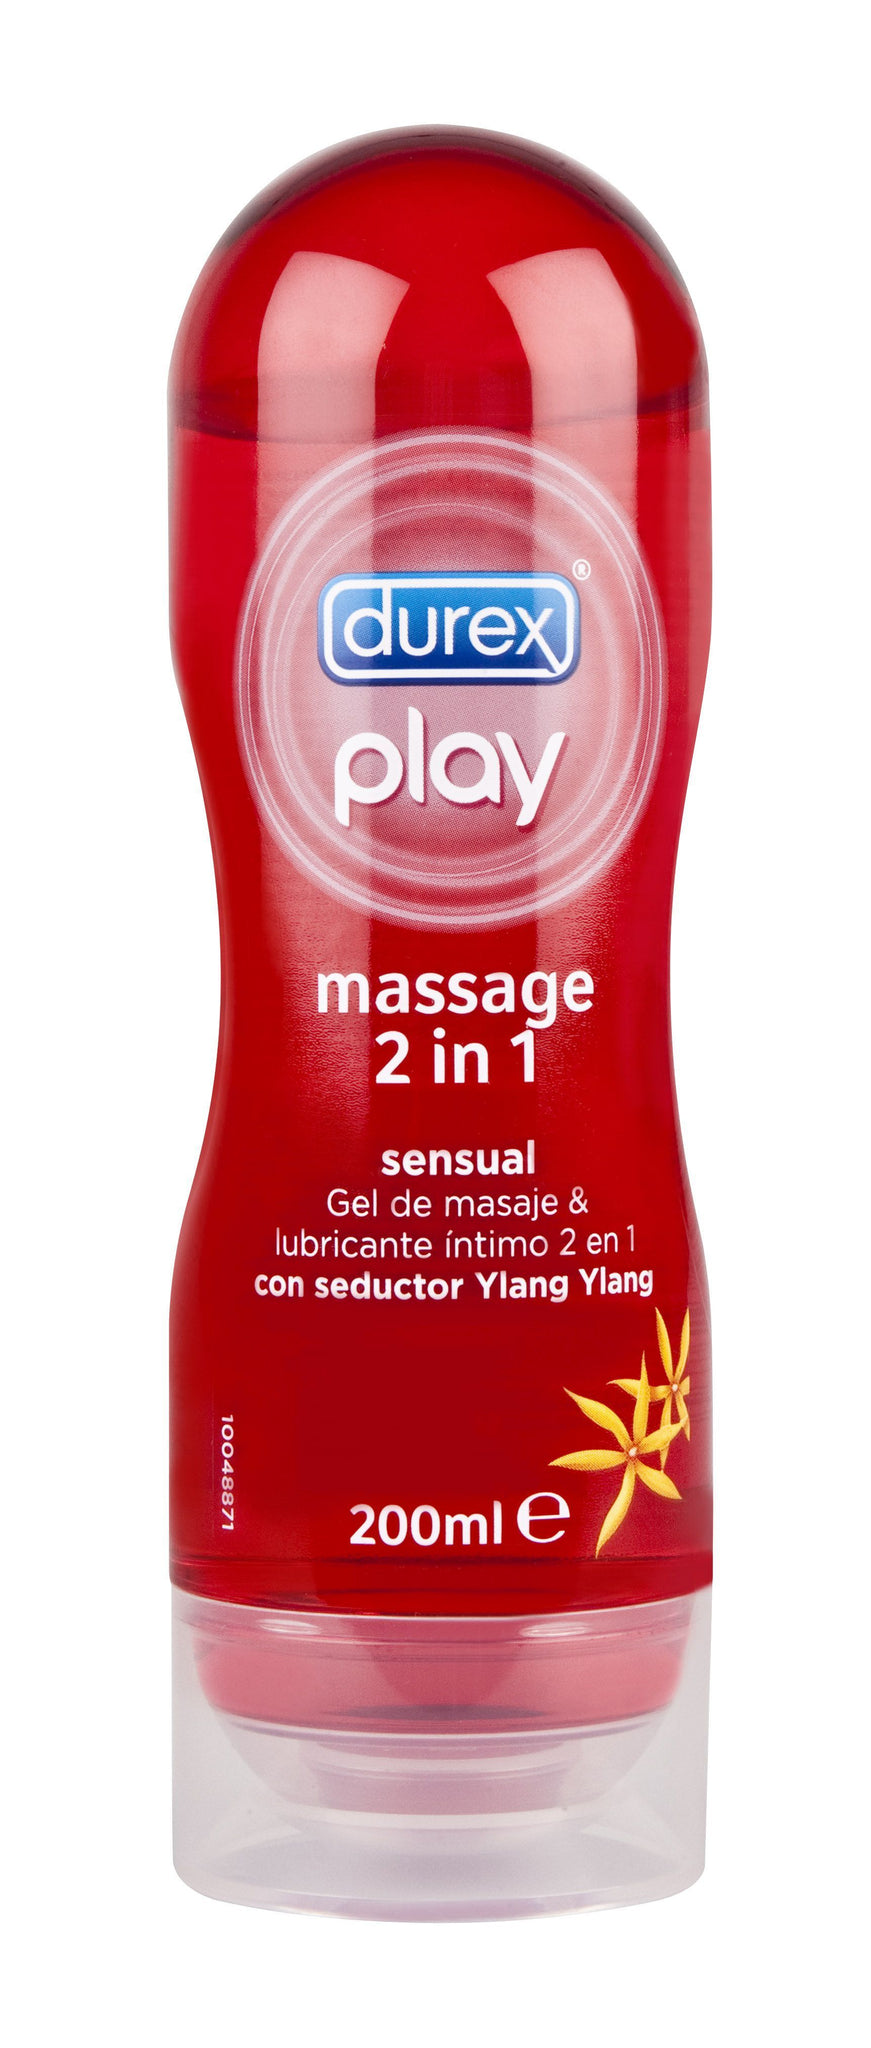 Durex Play Massage 2in1 Sensual